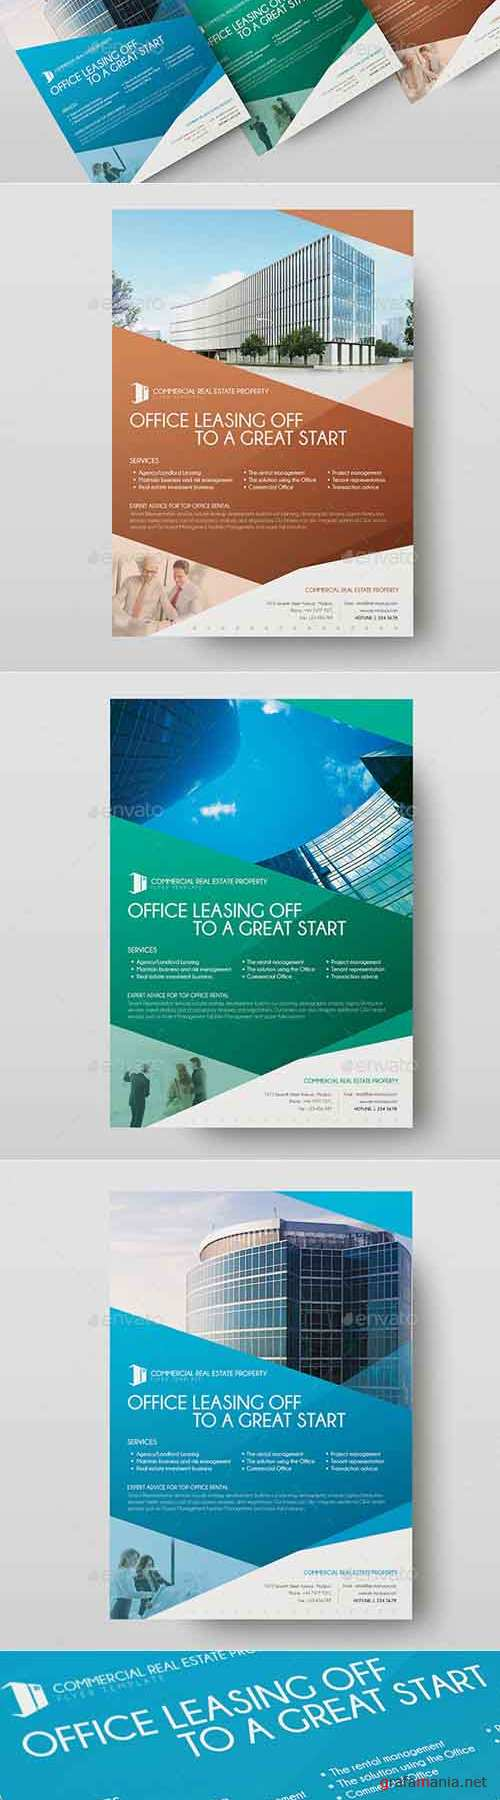 Commercial Real Estate Property - Flyer Template 01 12013590